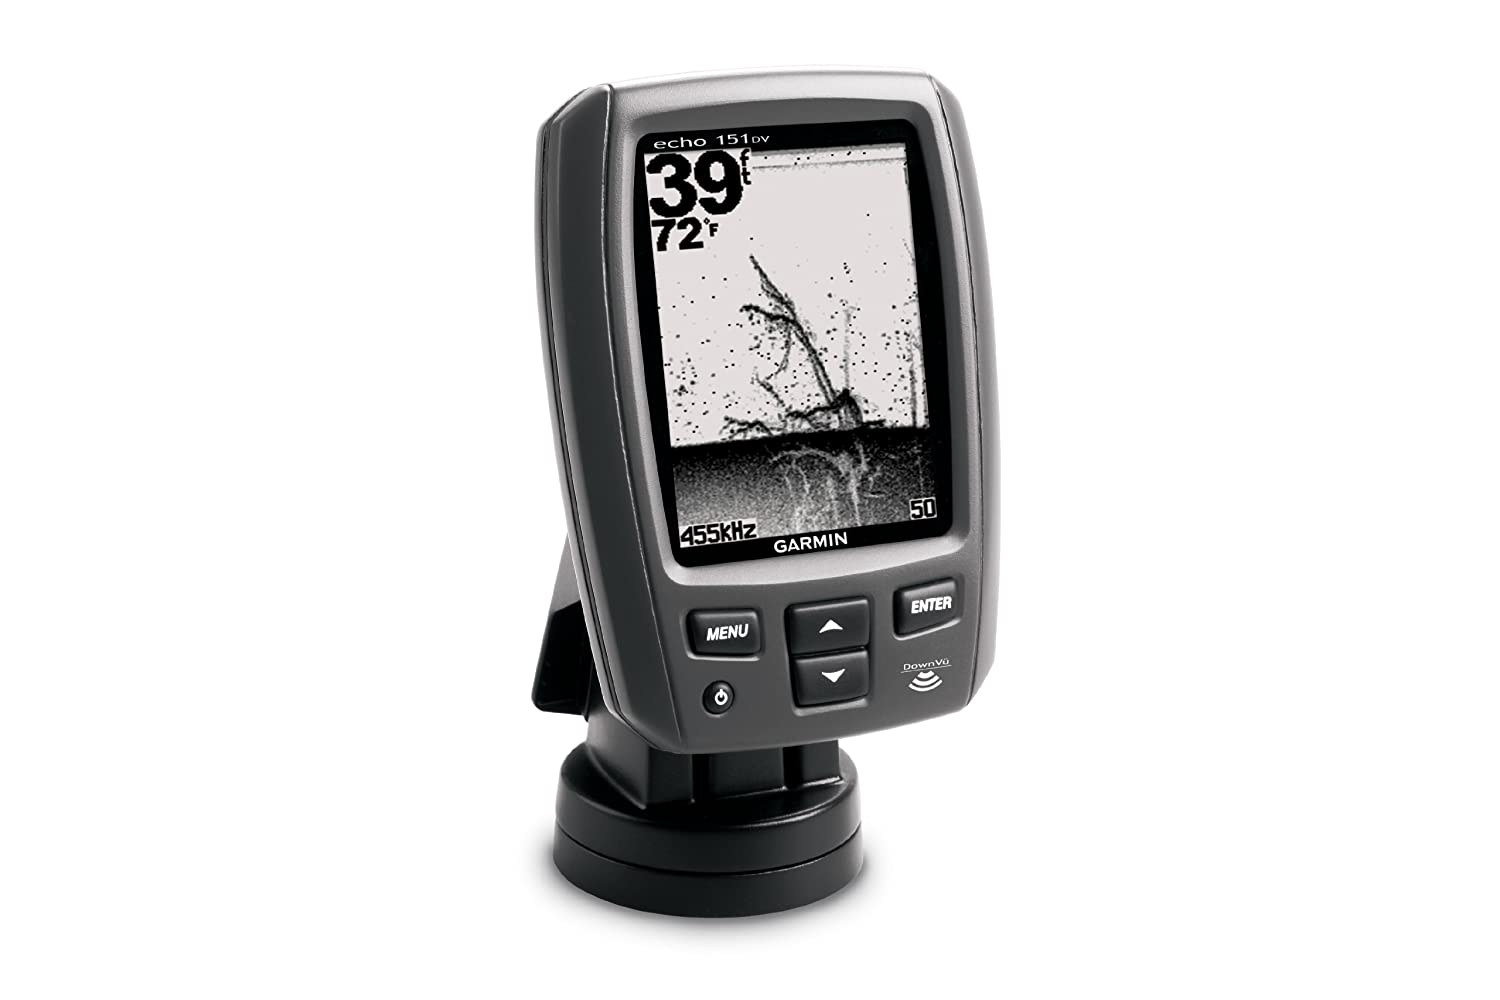 71RQyNJFj2L._SL1500_ amazon com garmin echo 151dv us and canada with transducer cell wiring diagram for fish finder at alyssarenee.co